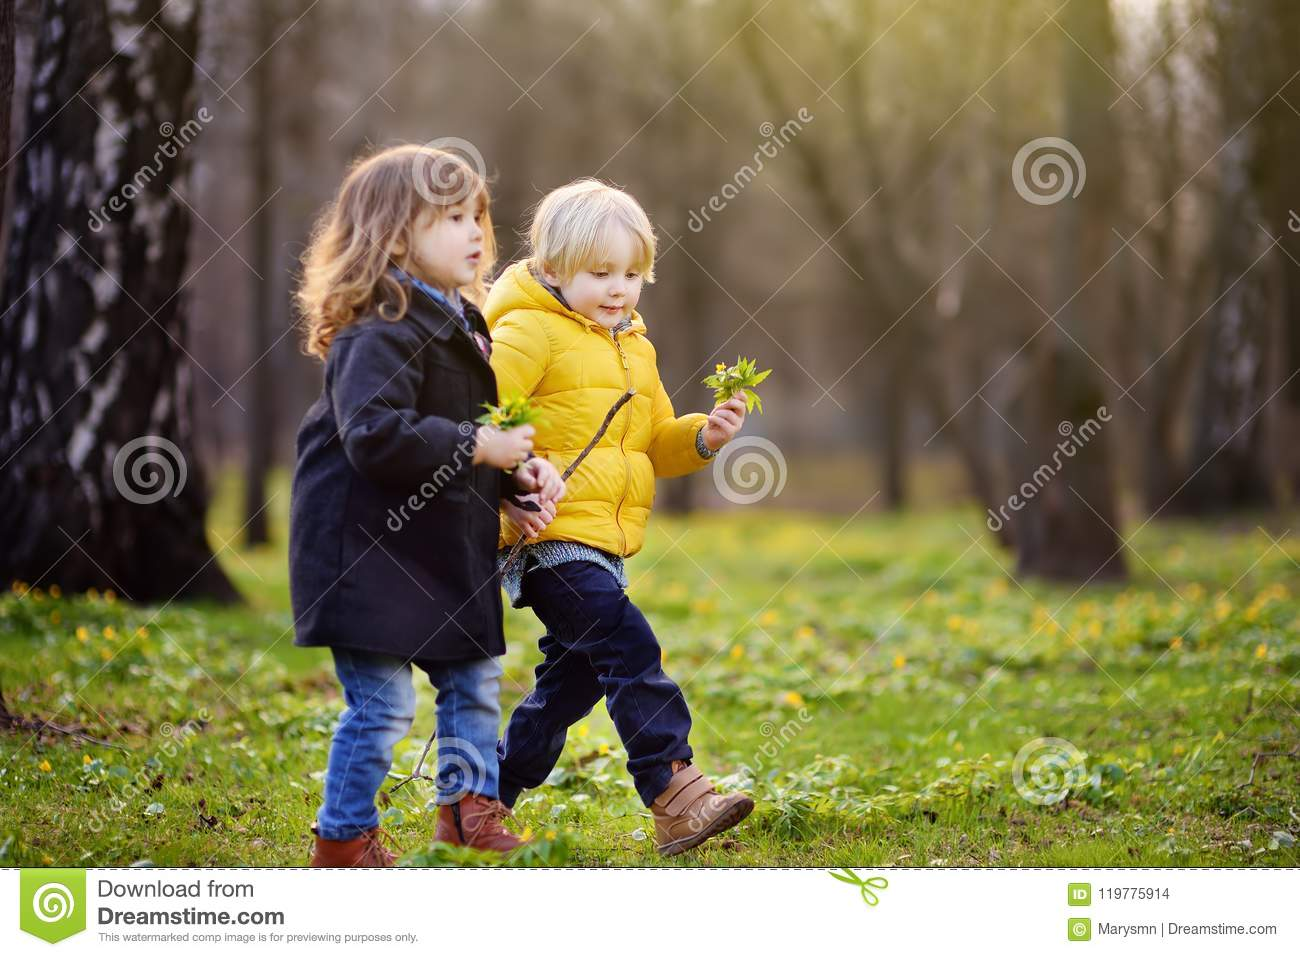 Cute little children playing together in sunny spring park